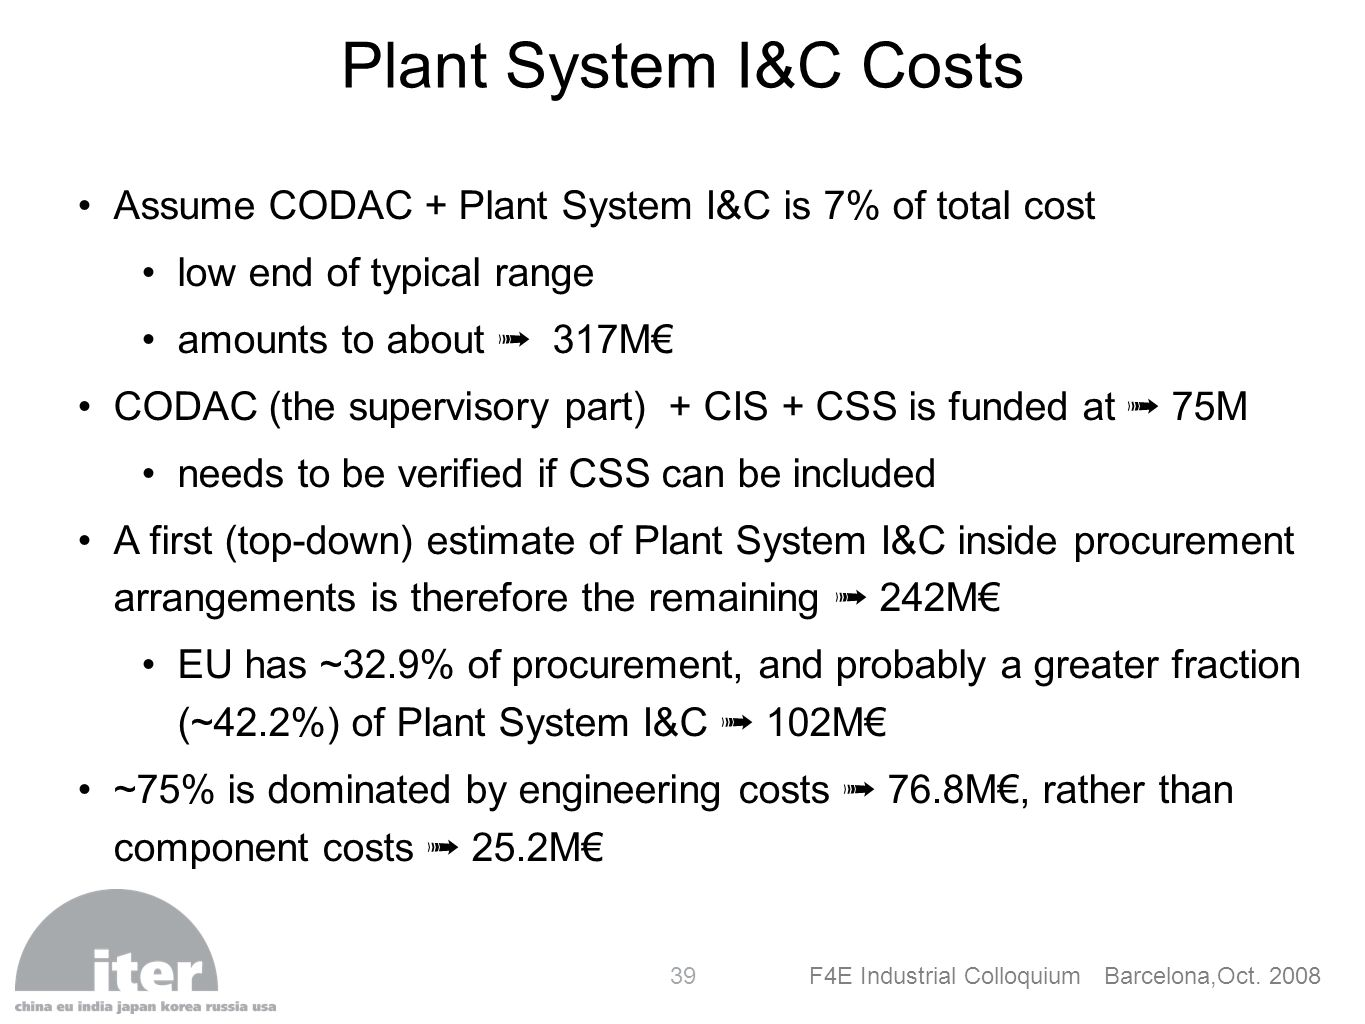 F4E Industrial Colloquium Barcelona,Oct. 2008 39 Plant System I&C Costs Assume CODAC + Plant System I&C is 7% of total cost low end of typical range a